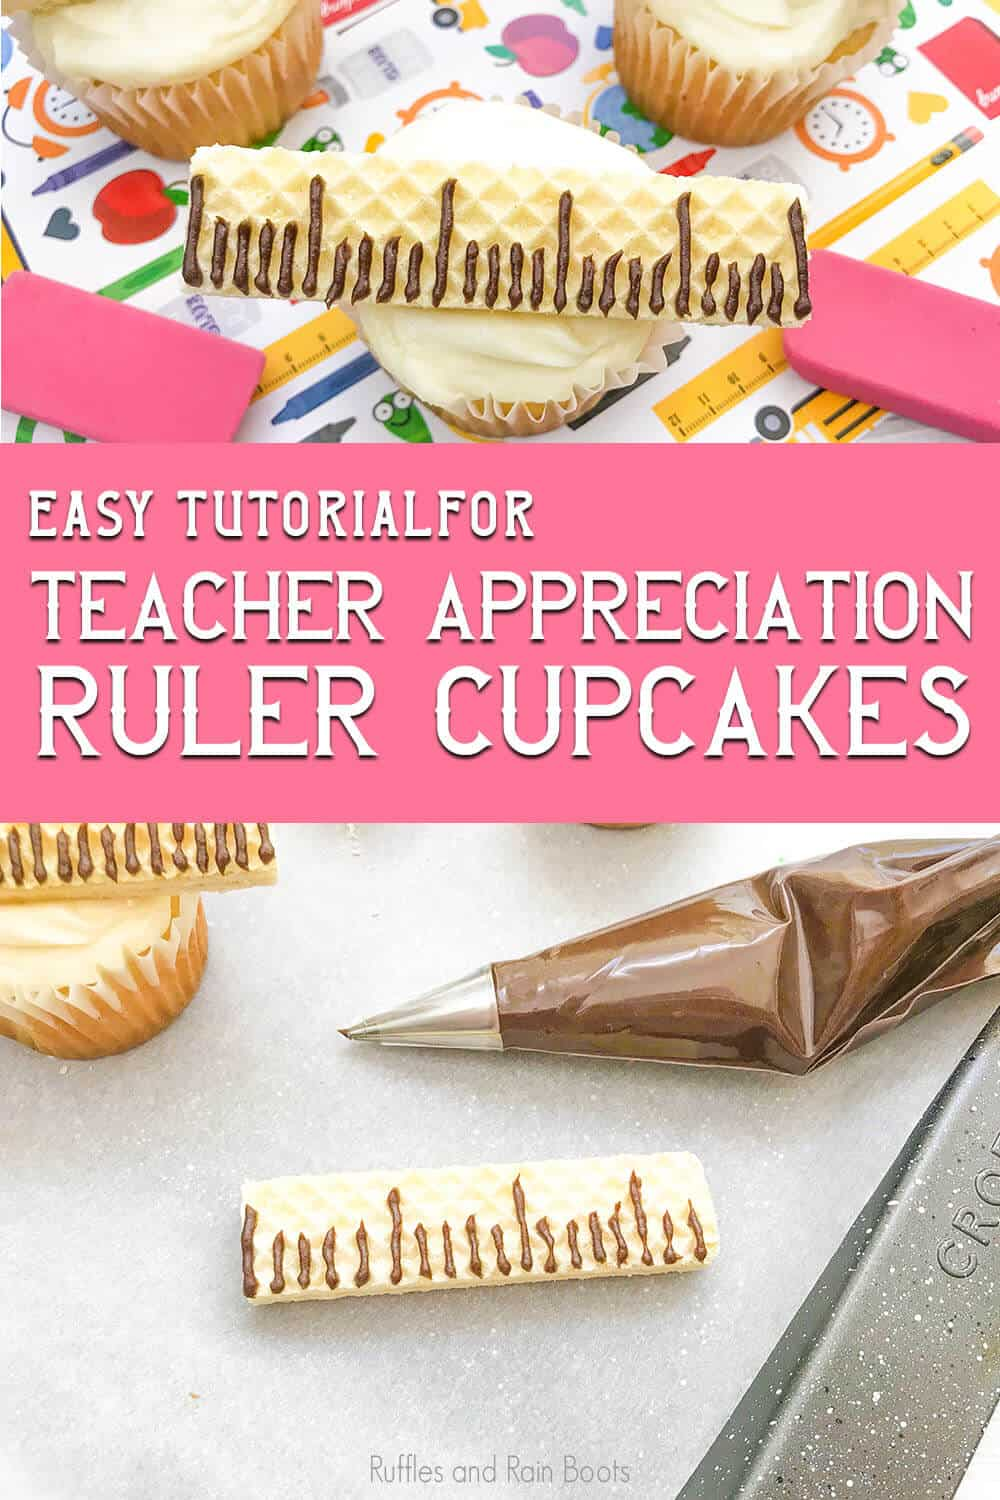 photo collage of ruler cupcakes with text which reads easy tutorial for teacher appreciation ruler cupcakes